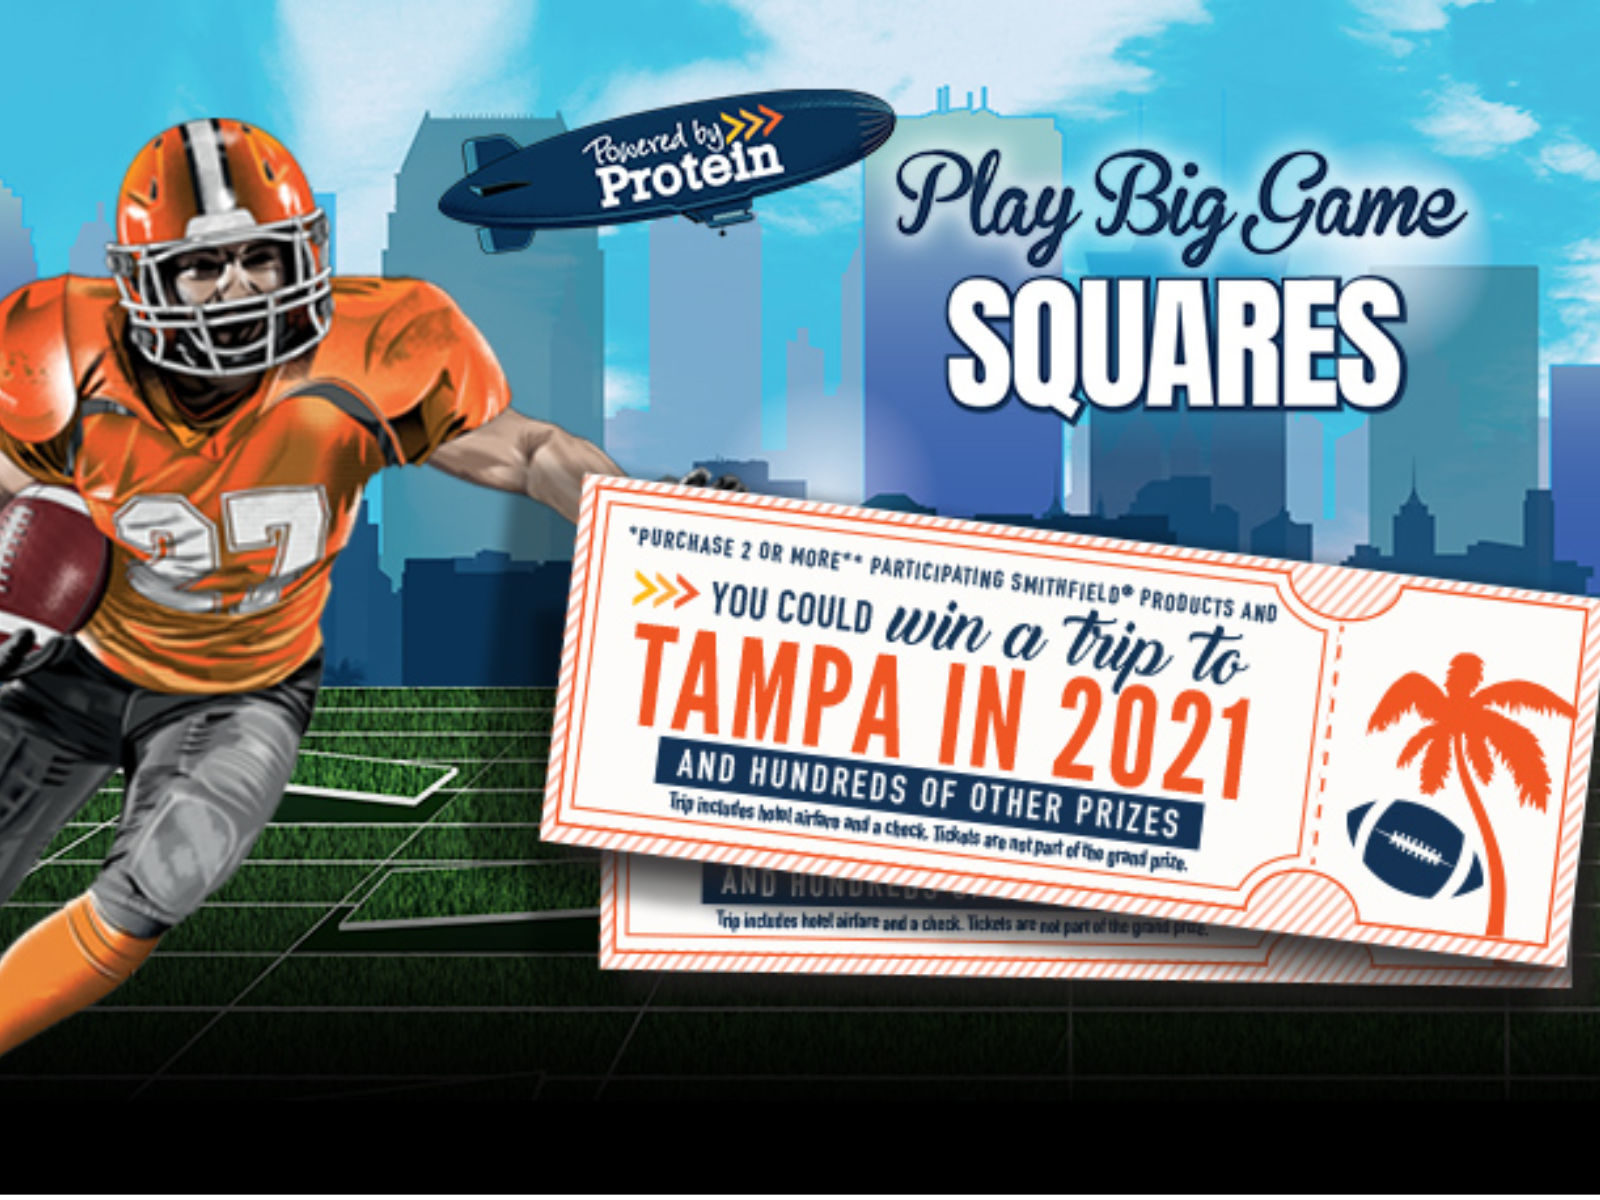 Grab Delicious Smithfield Food Products & Play The Publix Big Game Squares Instant Win Game And Sweepstakes on I Heart Publix